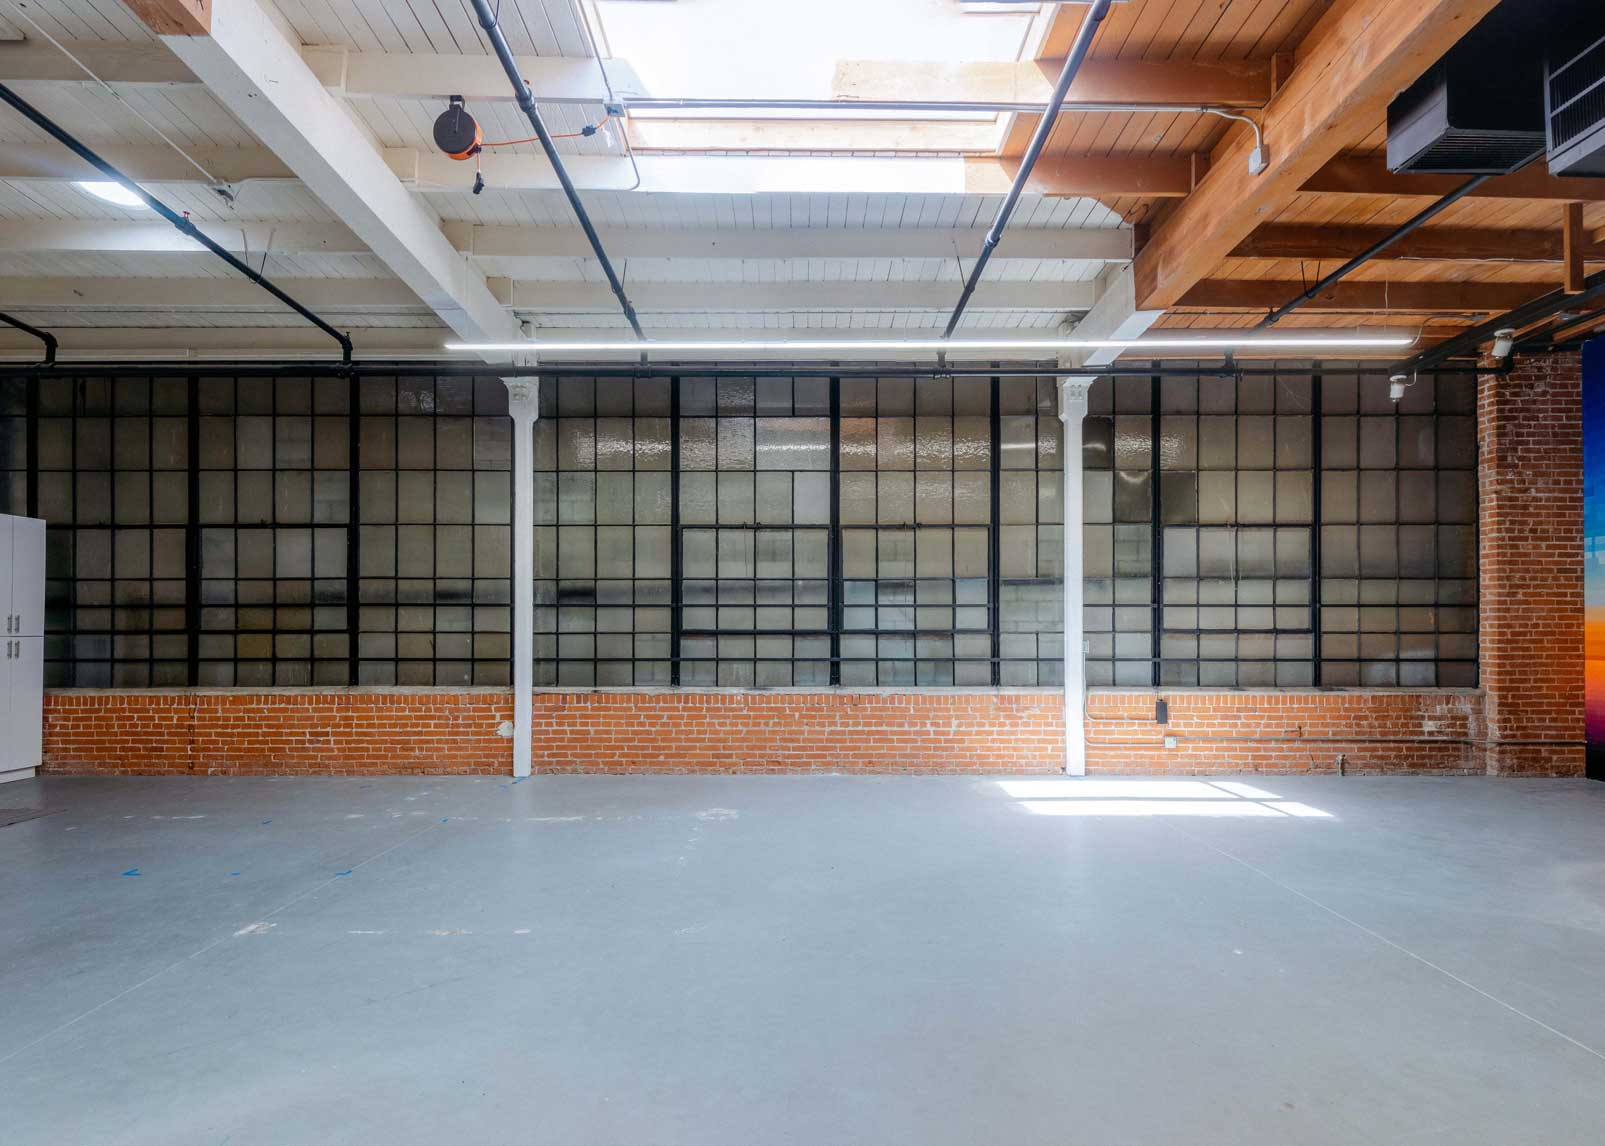 An empty vied of the wall of warehouse-style industrial windows.